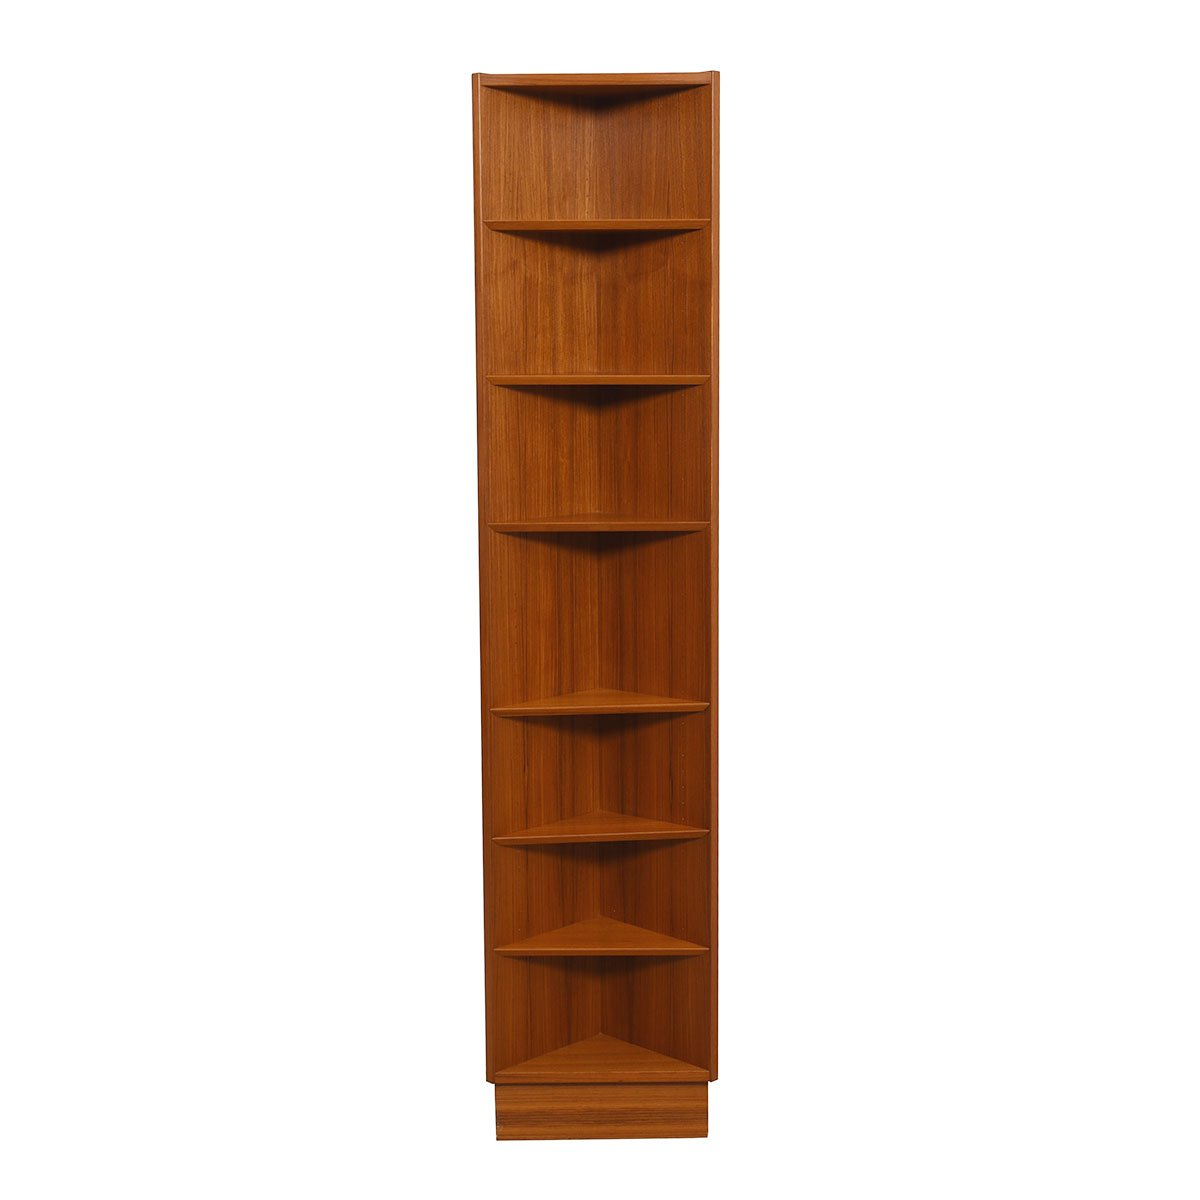 Danish Teak Corner Bookcase w/ Adjustable Shelves by Hundevad